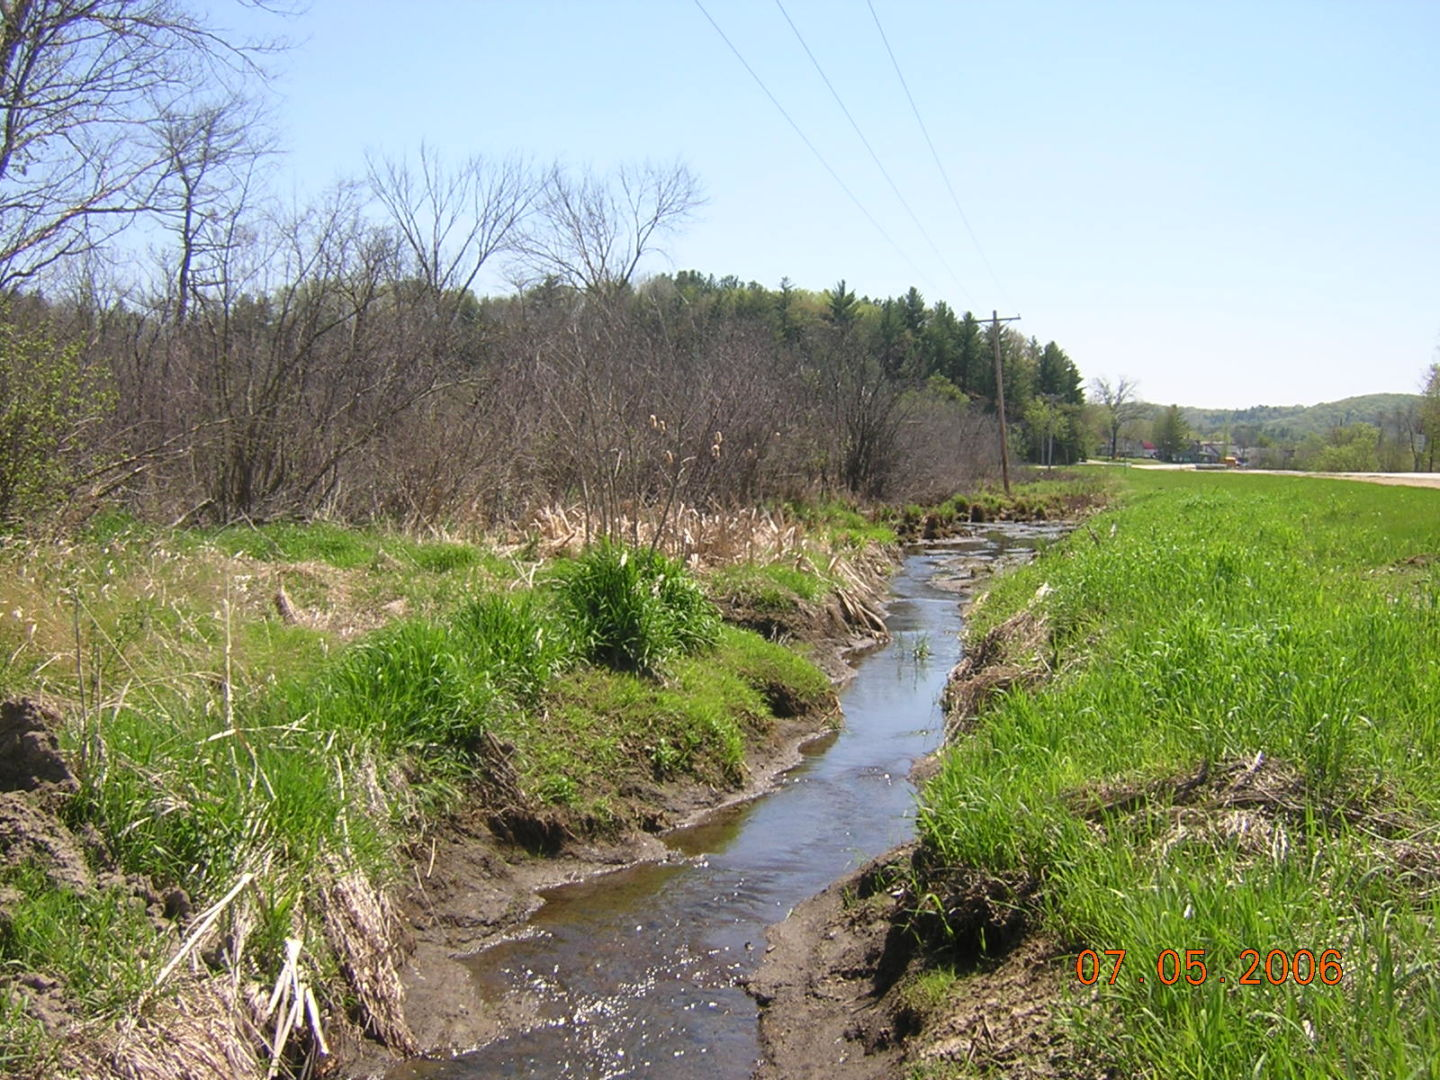 A ditch runs along the side of the road, draining the nearby wetland and altering the historic hydrology of the site.